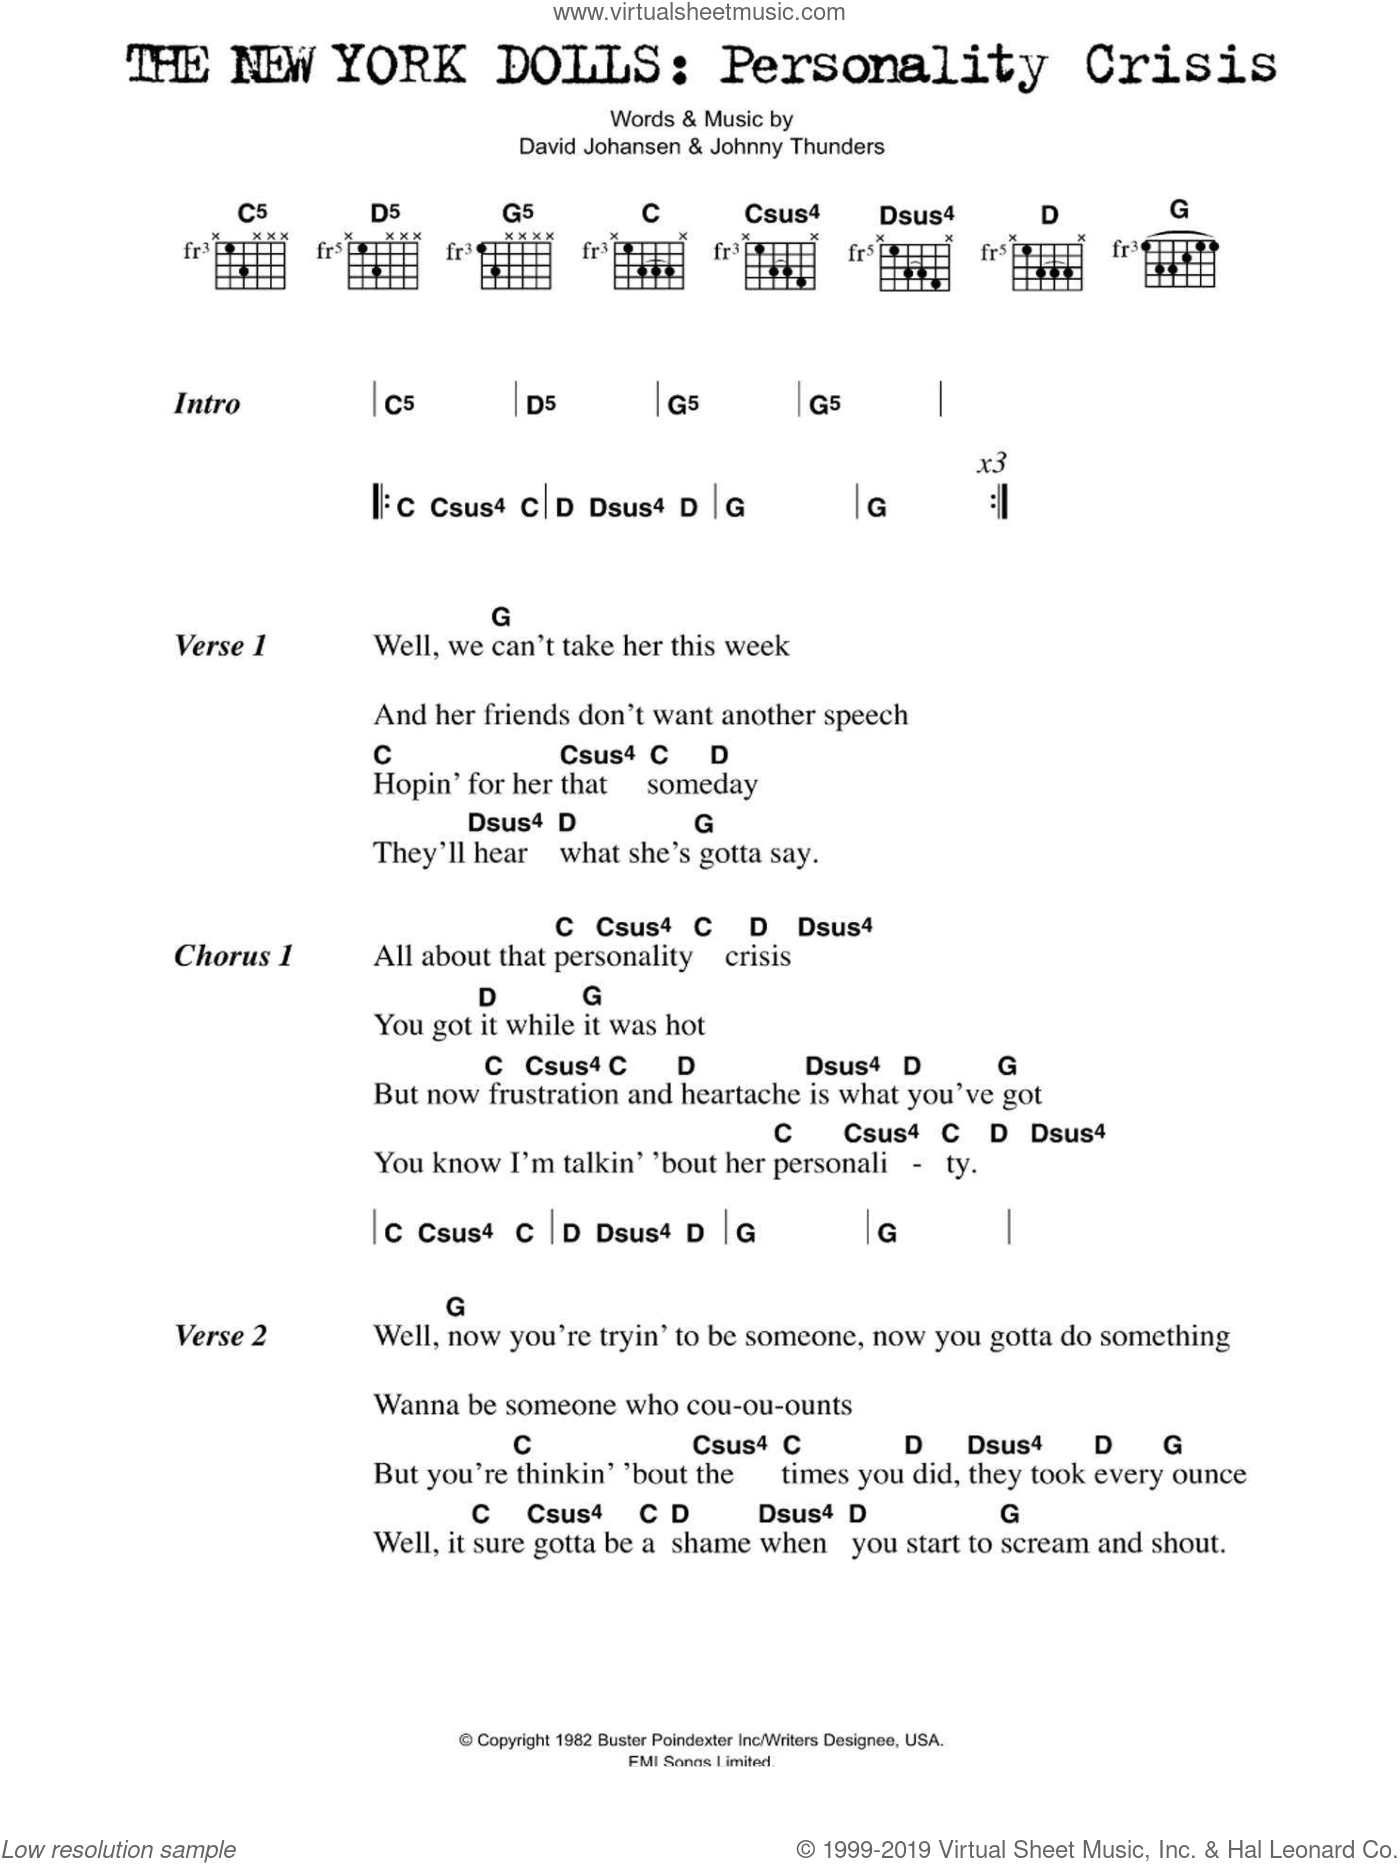 Personality Crisis sheet music for guitar (chords) by The New York Dolls, David Johansen and Johnny Thunders, intermediate skill level